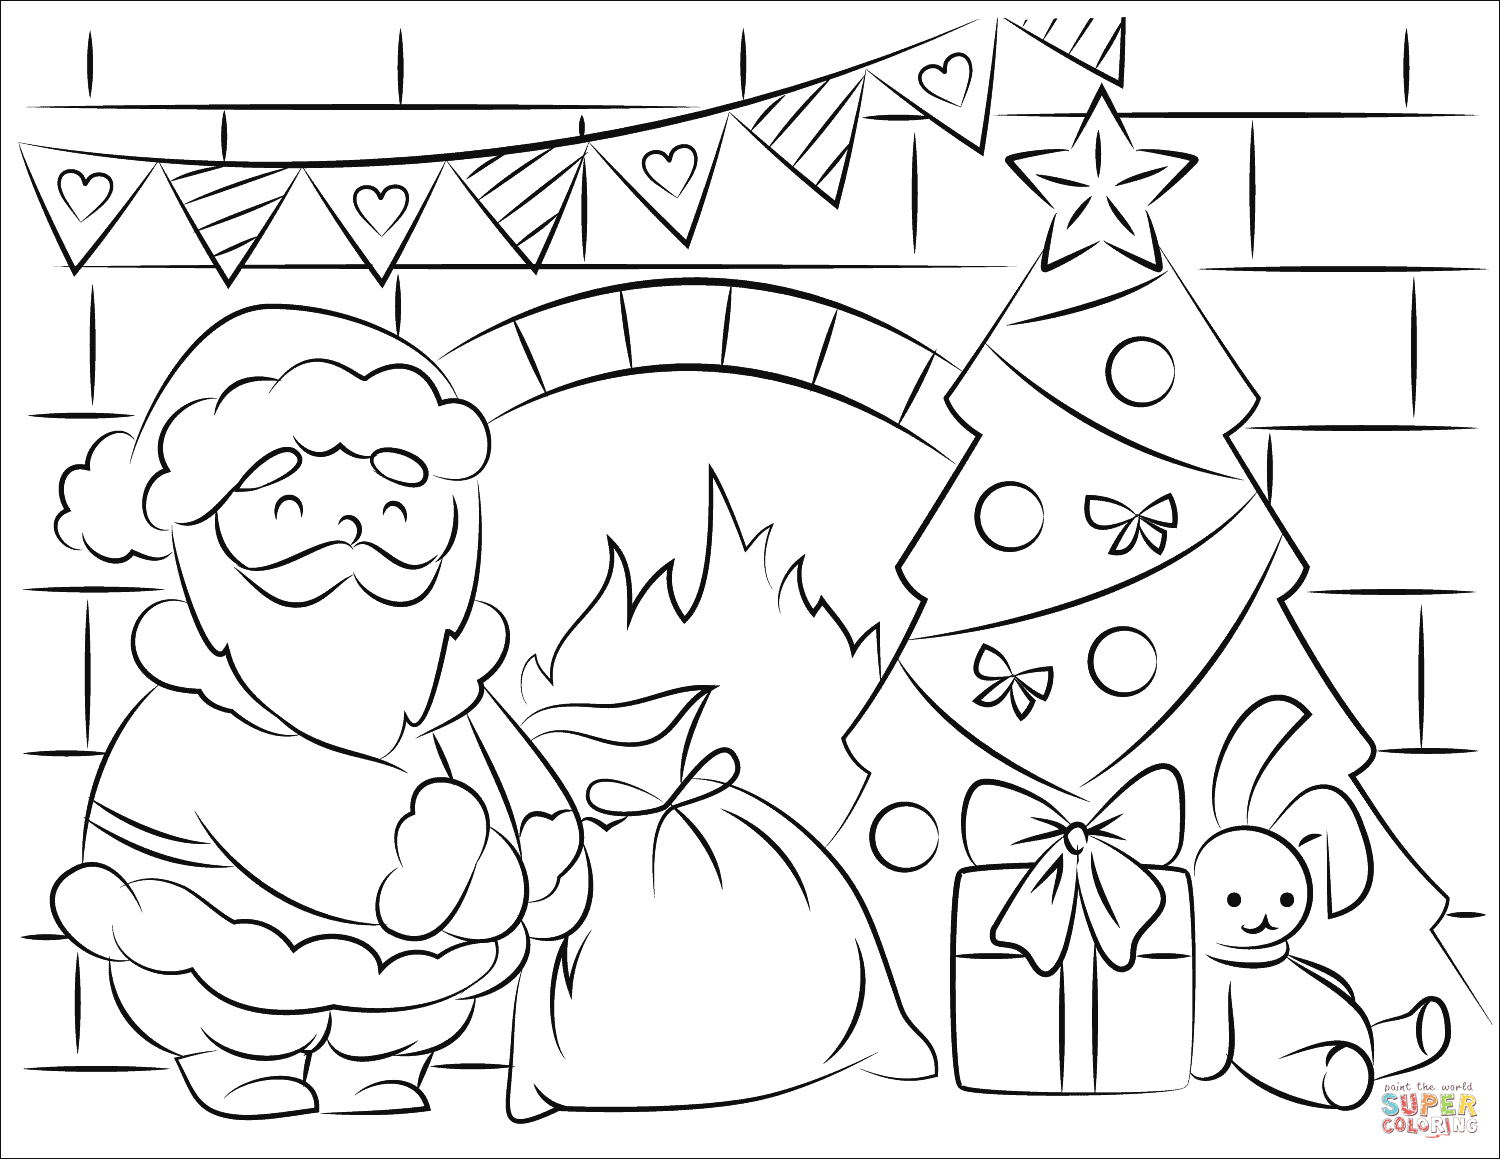 Santa Claus Bringing Presents In Christmas Coloring Page